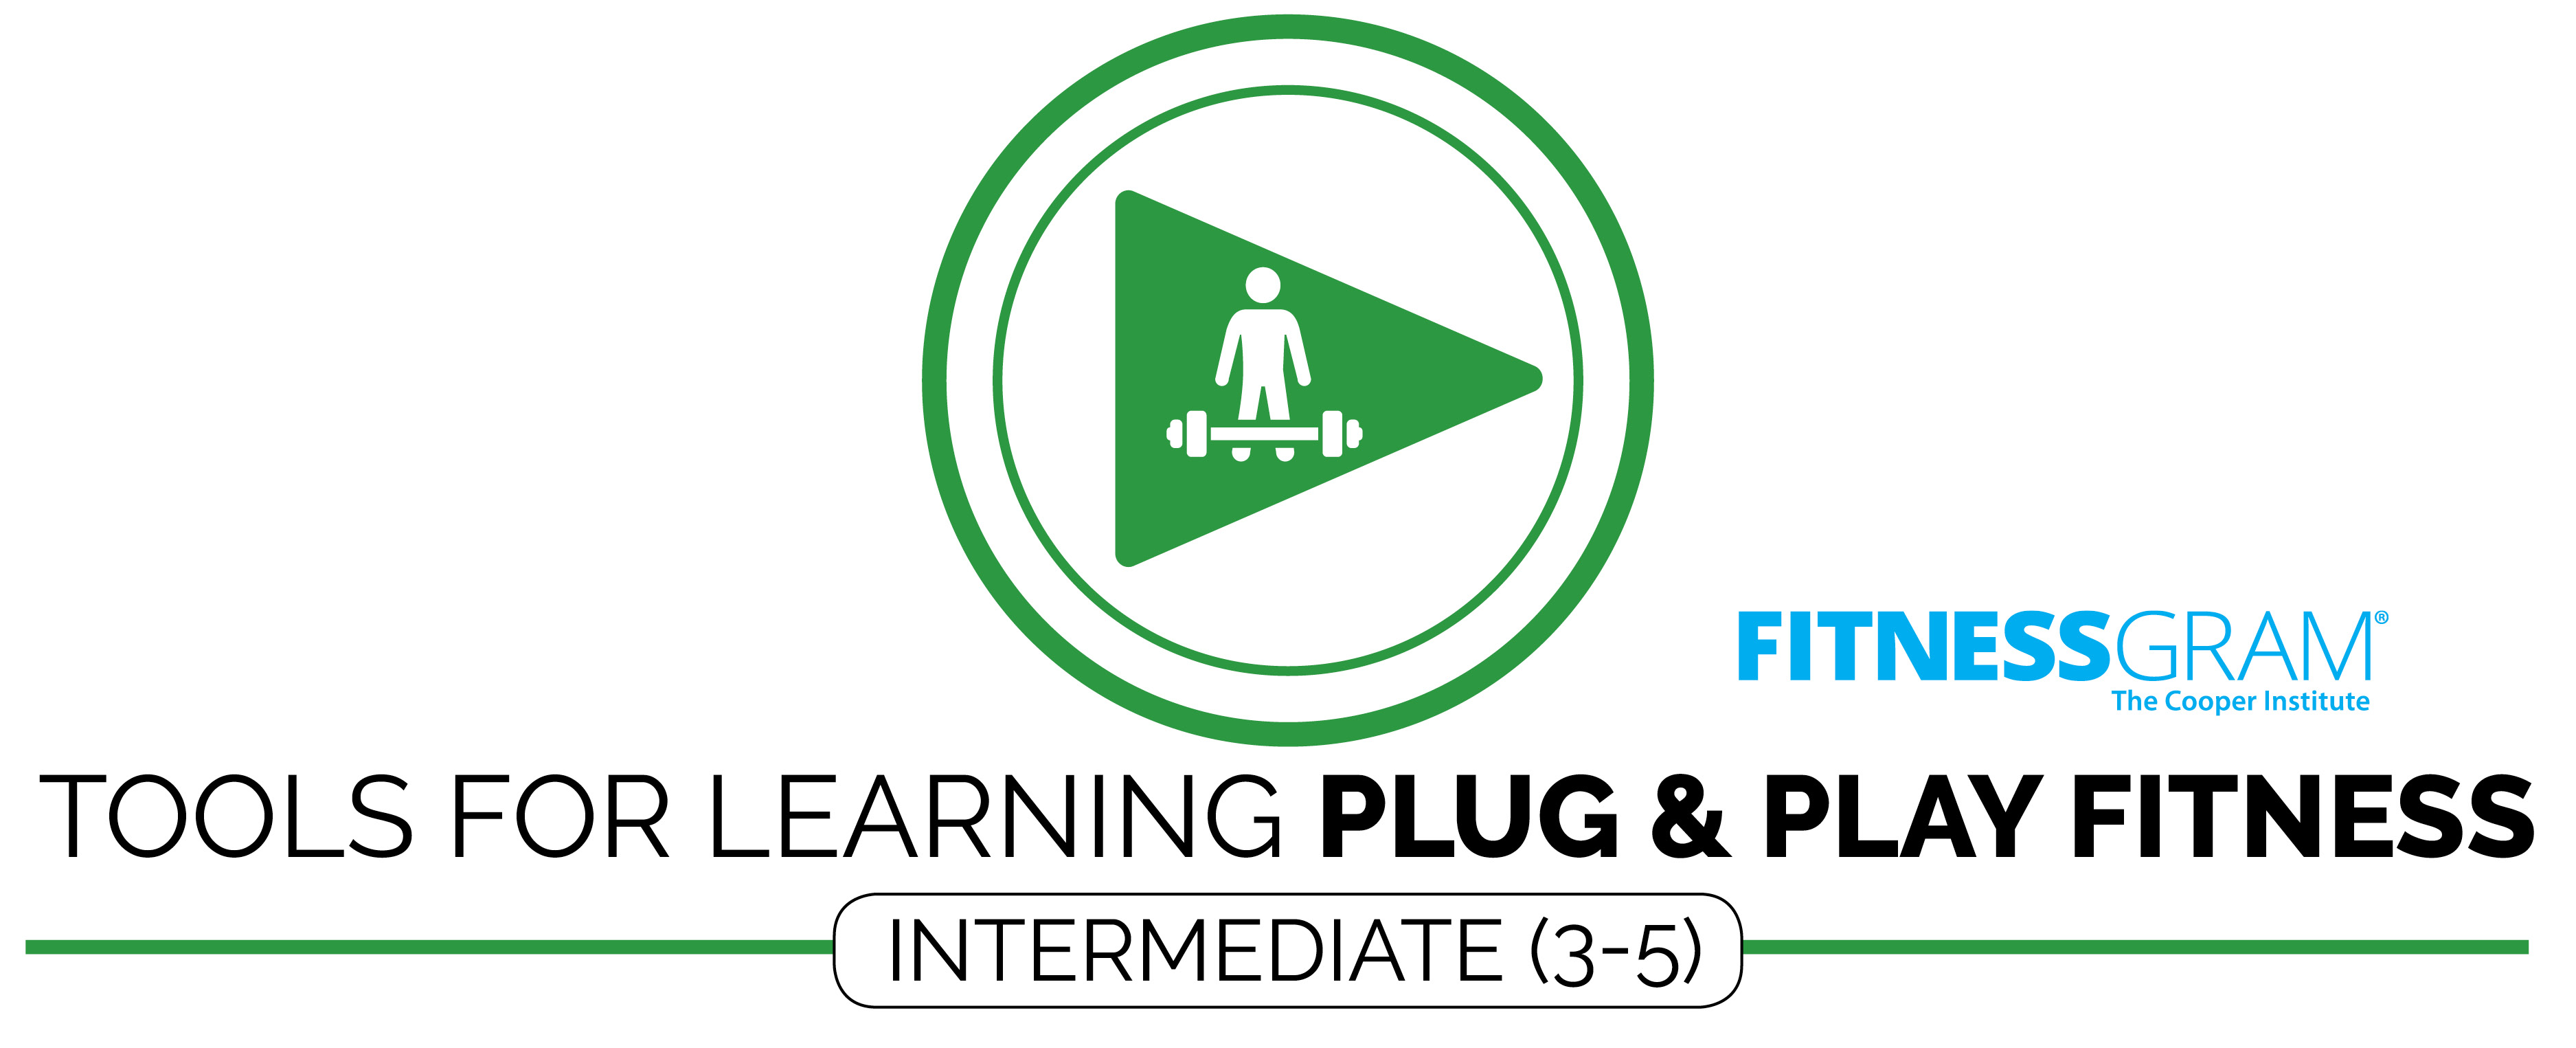 Plug & Play Fitness(Intermediate 3-5)